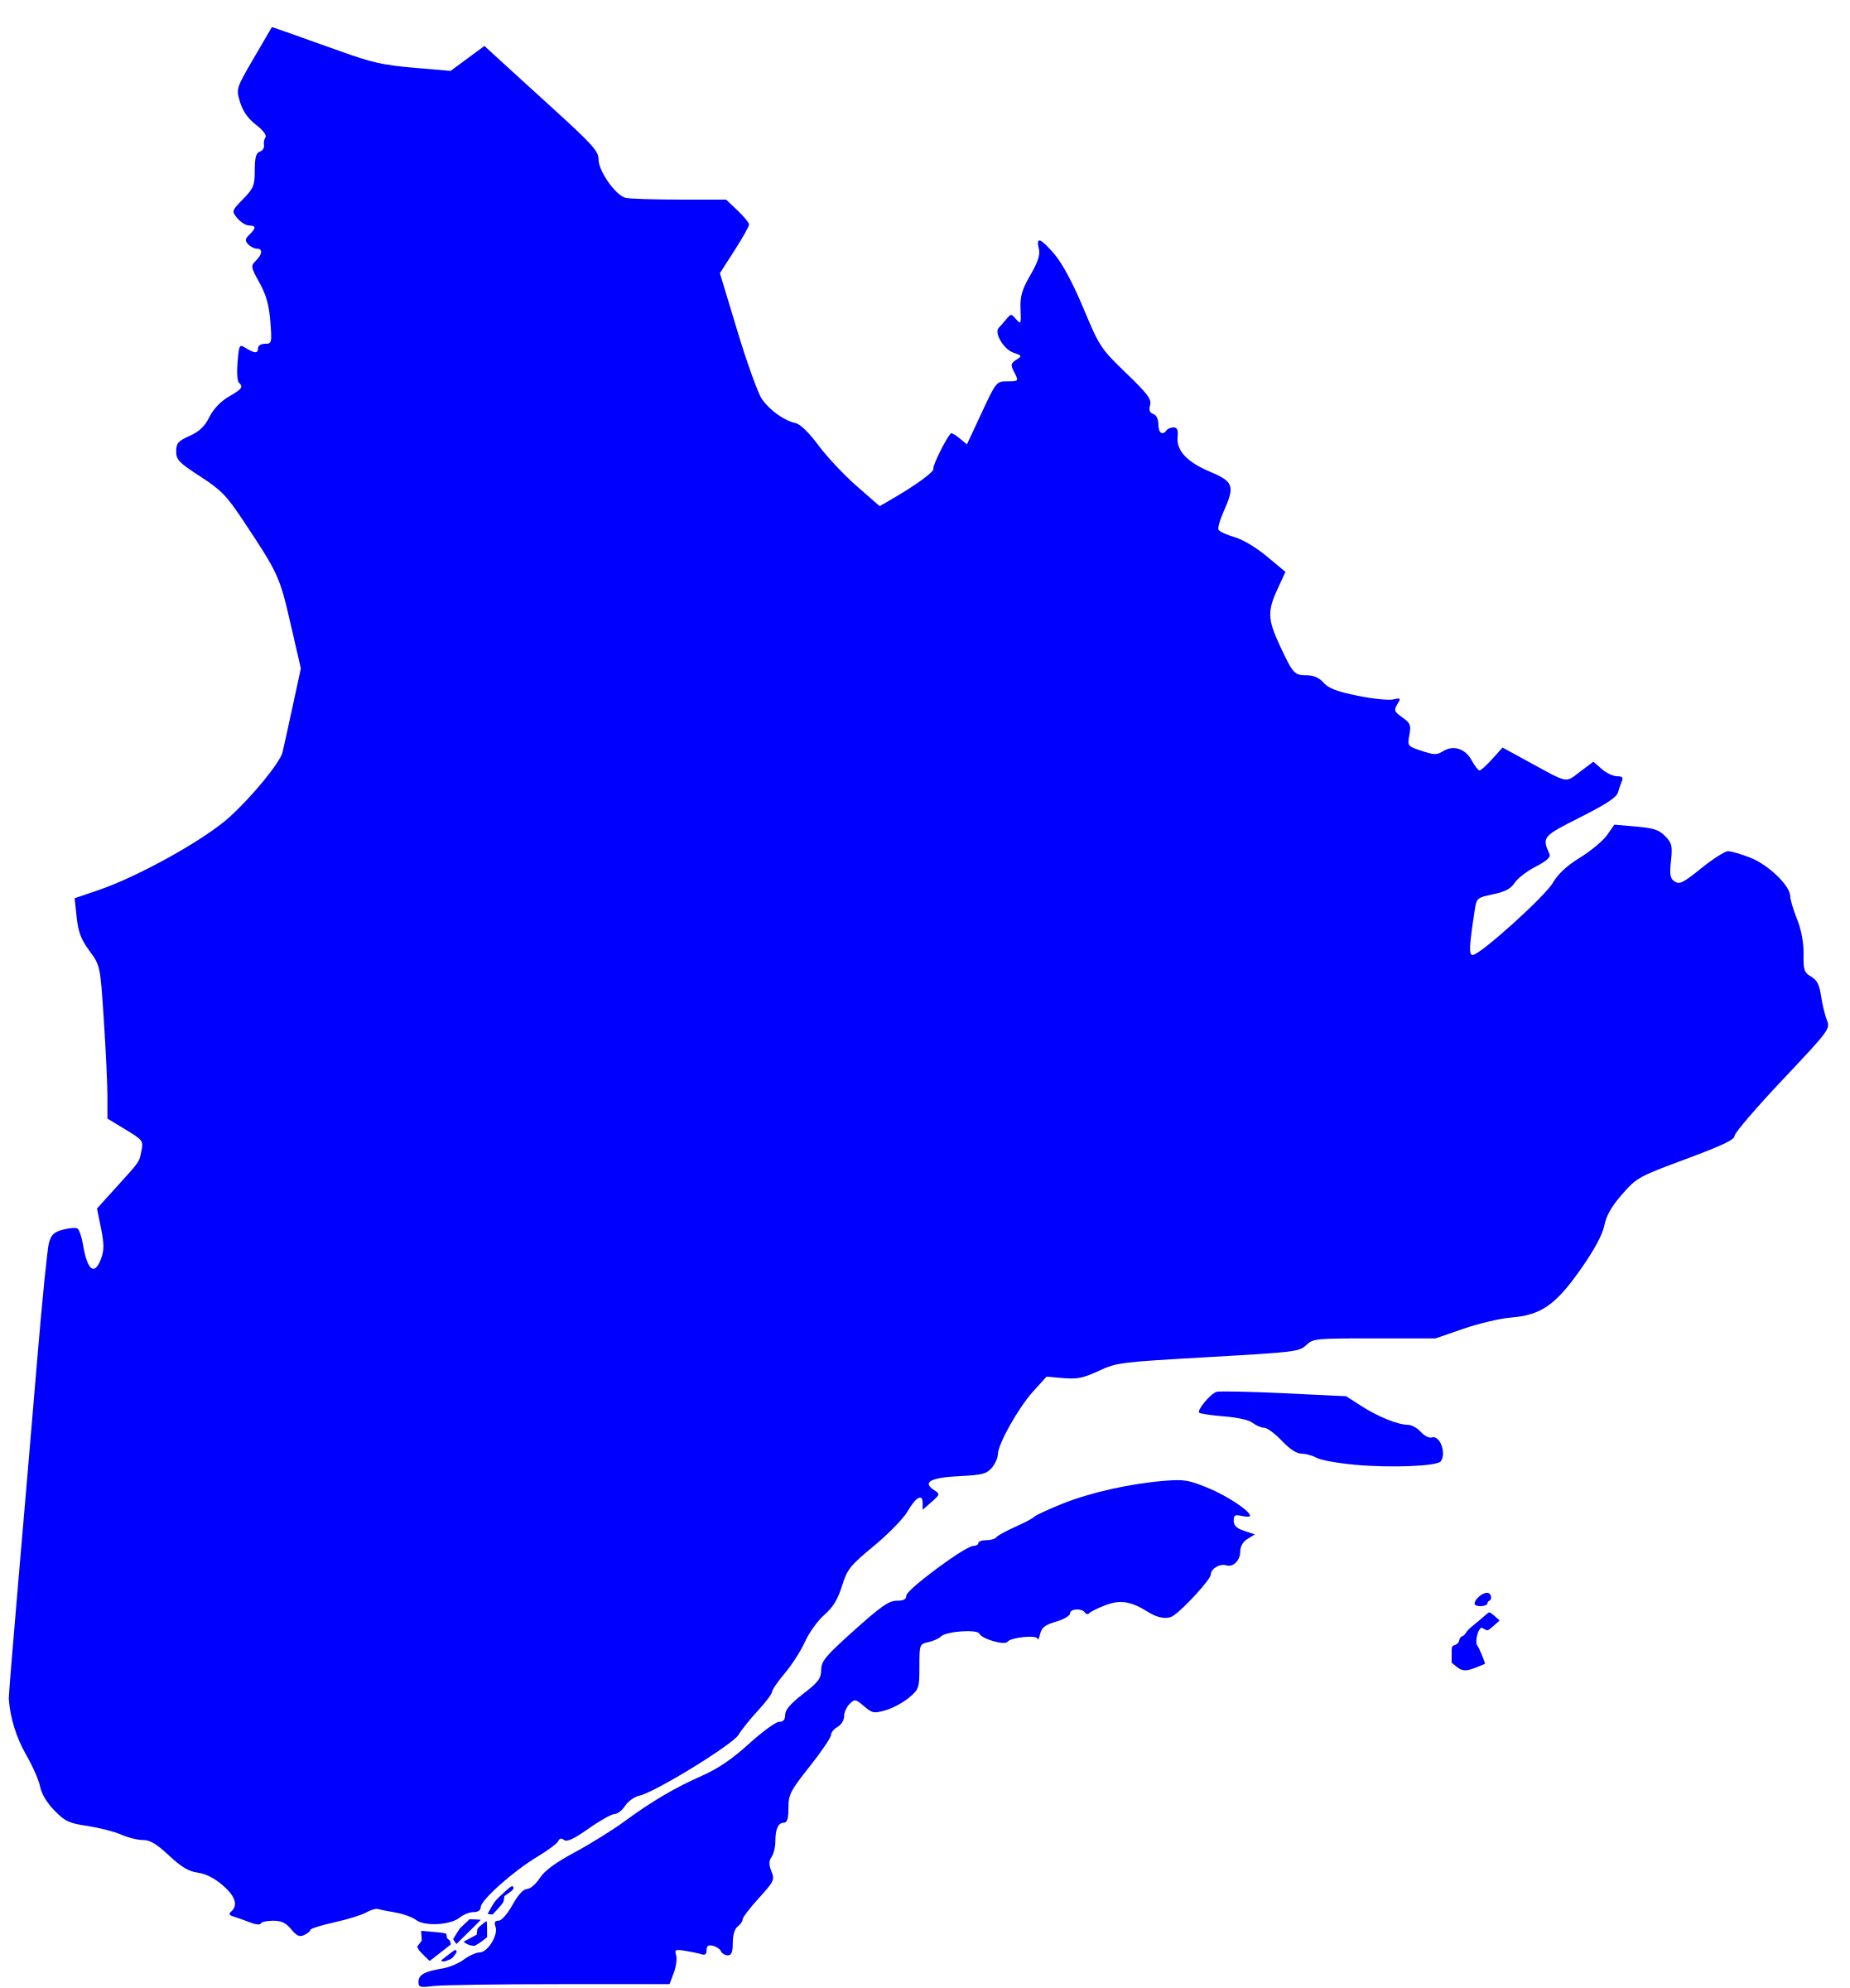 Quebec map by paradoxall